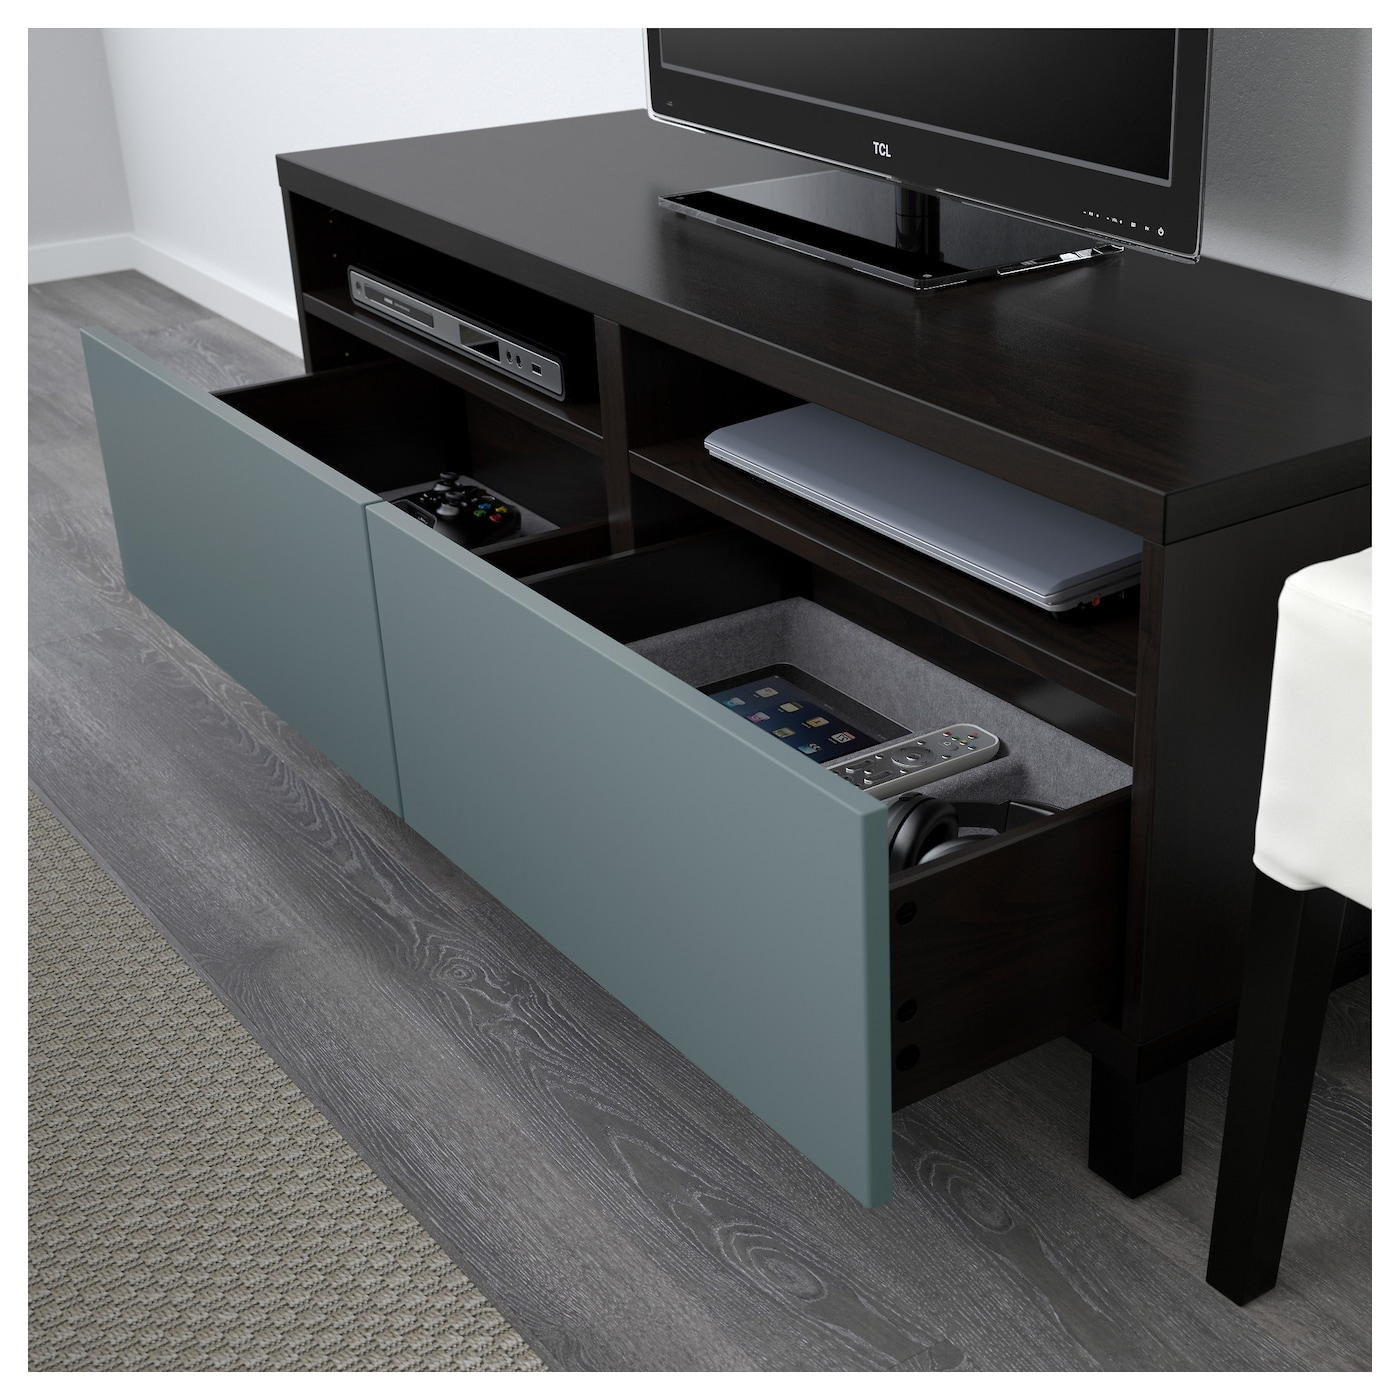 best banc tv avec tiroirs brun noir valviken gris turquoise 120 x 40 x 48 cm ikea. Black Bedroom Furniture Sets. Home Design Ideas